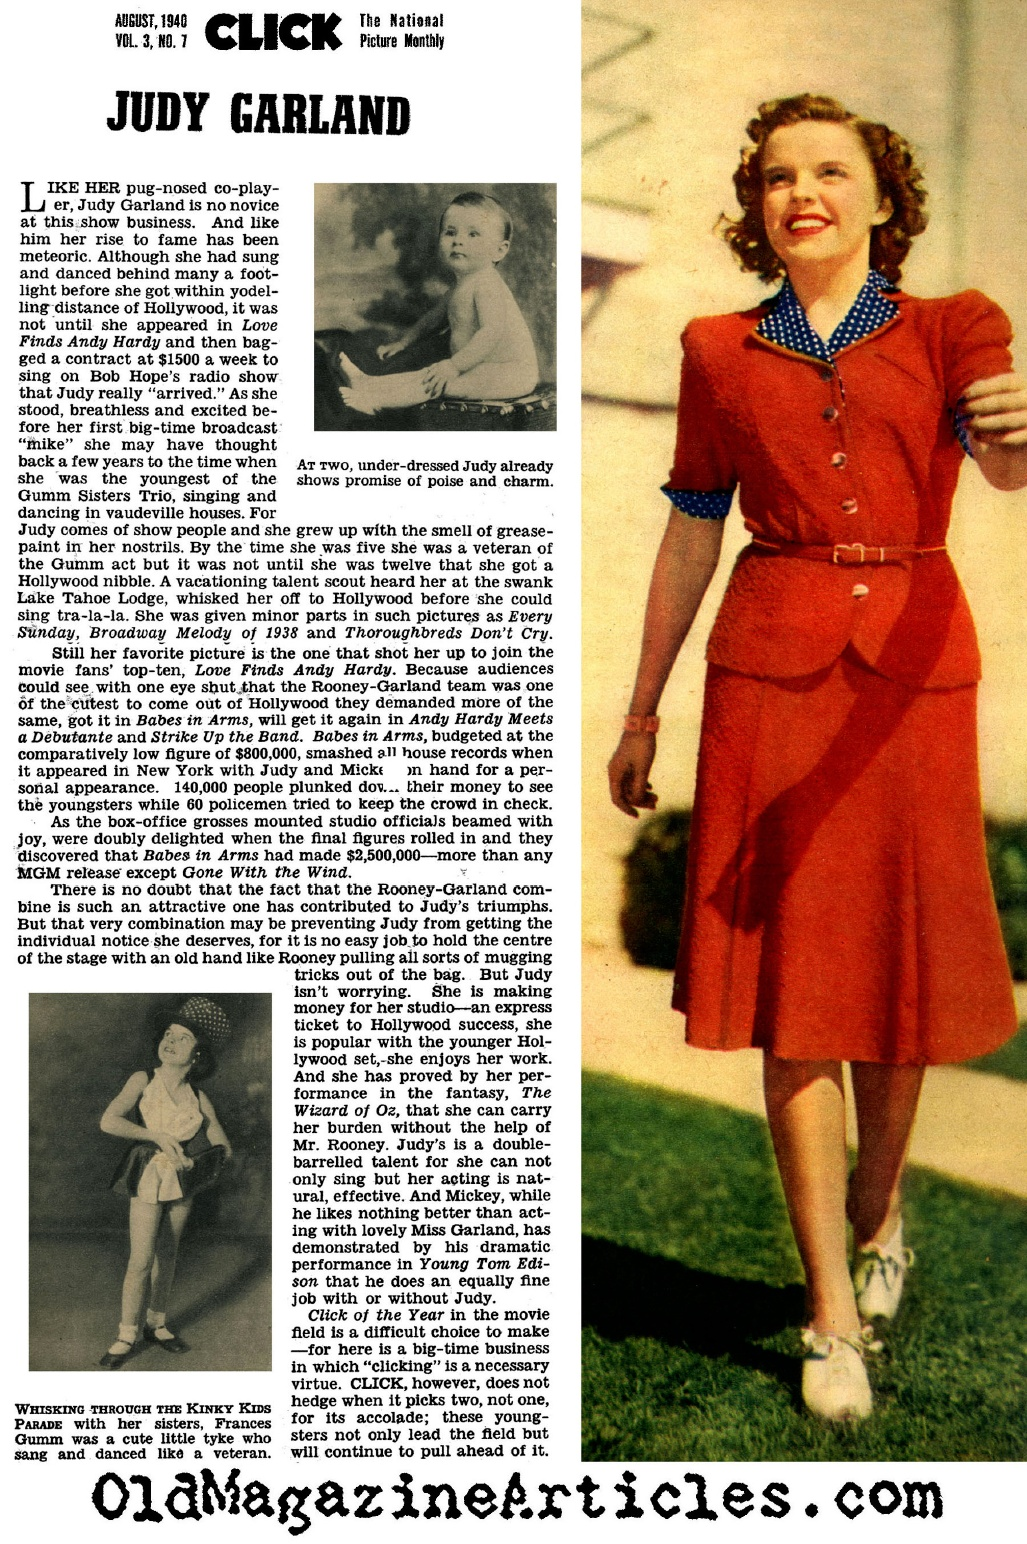 Judy Garland Fan Magazine Article 1940 Hollywood Fan Magazine About Early Career Of Judy Garland Judy Garland Profiled One Year After Wizard Of Oz Judy Garland And The Andy Hardy Movies 1940 Magazine Article About Judy